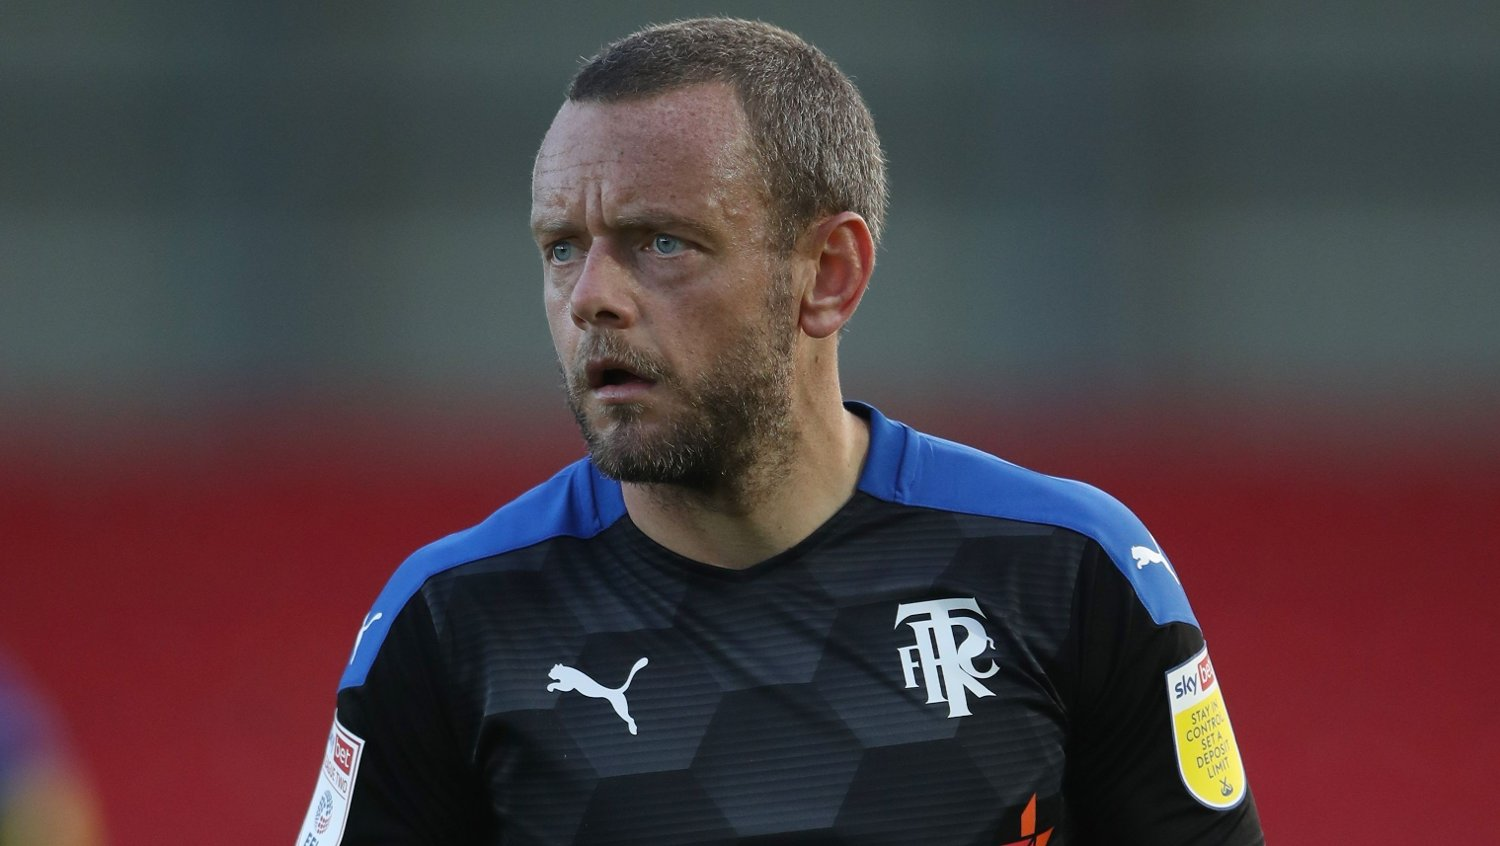 Tranmere Rovers' Jay Spearing during the Sky Bet League Two match at The Peninsula Stadium, Salford.